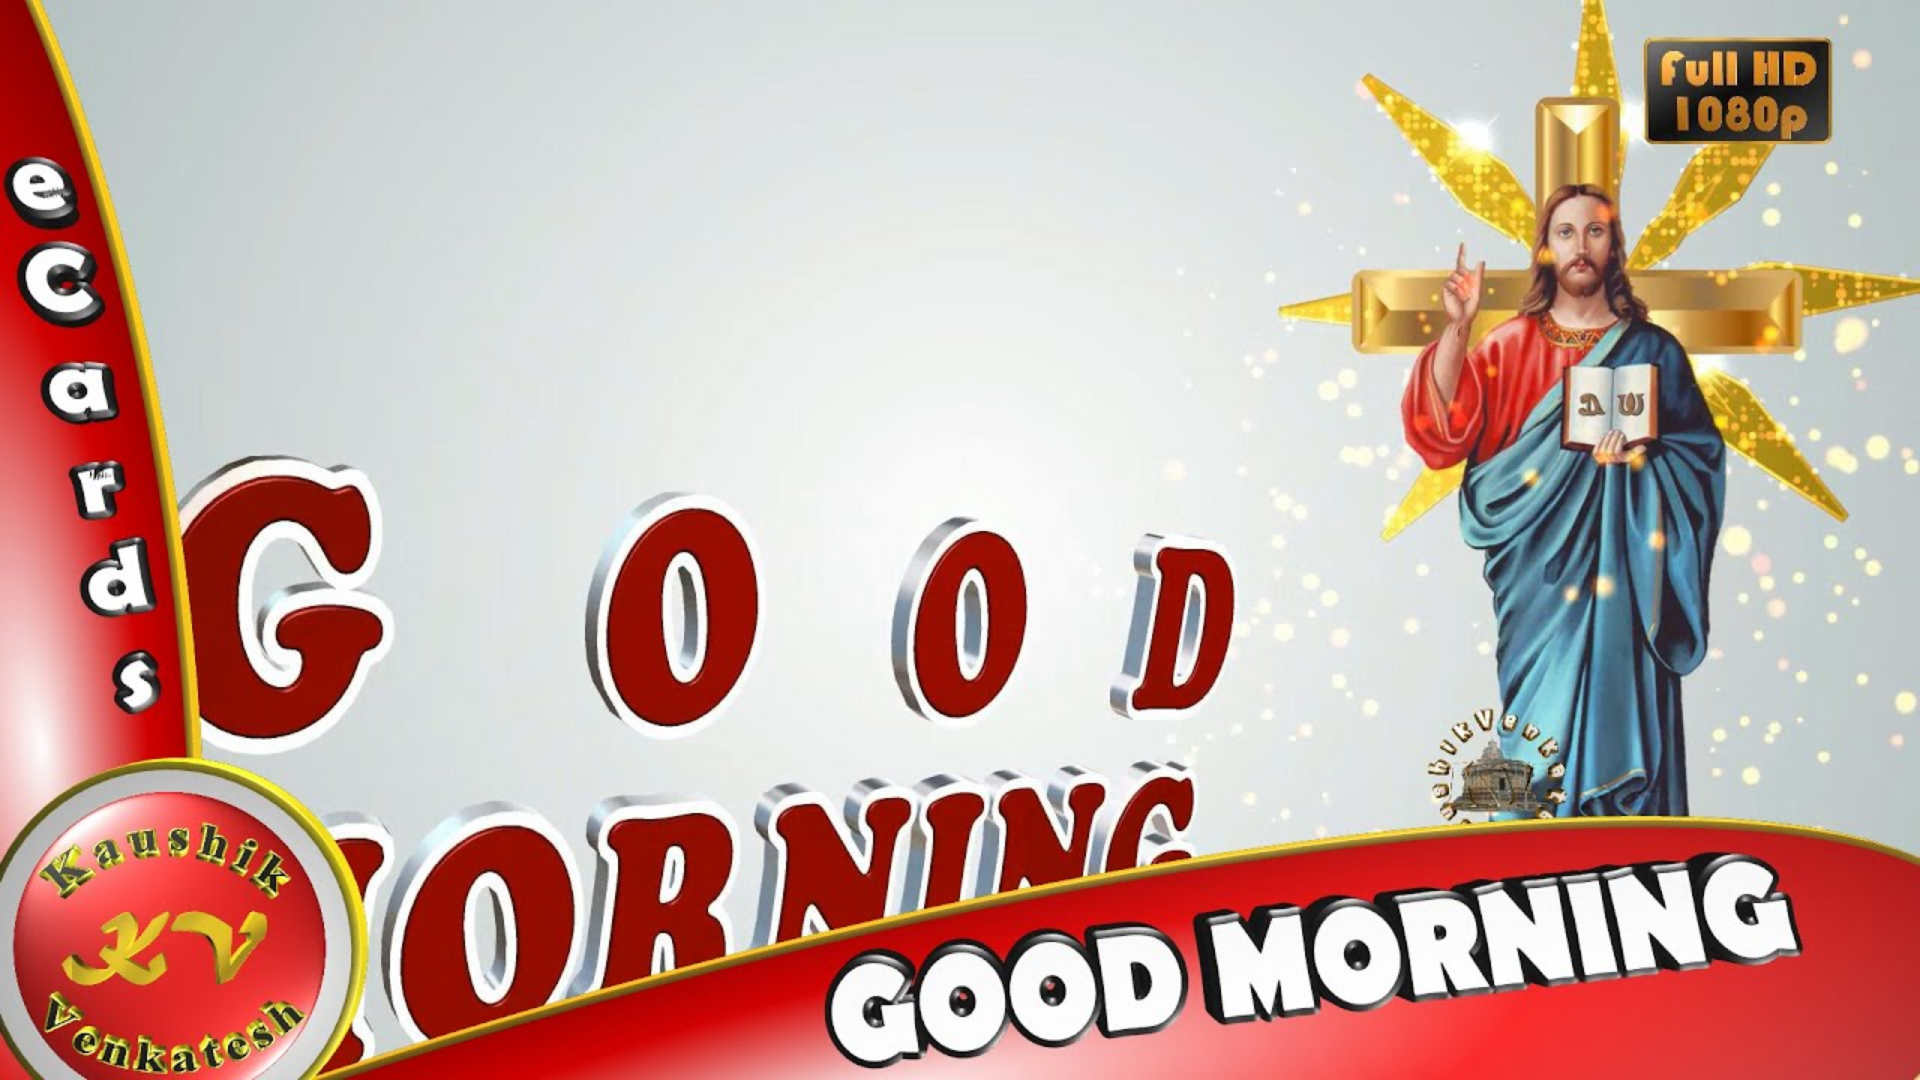 Greetings Image of Christian Good Morning Wishes